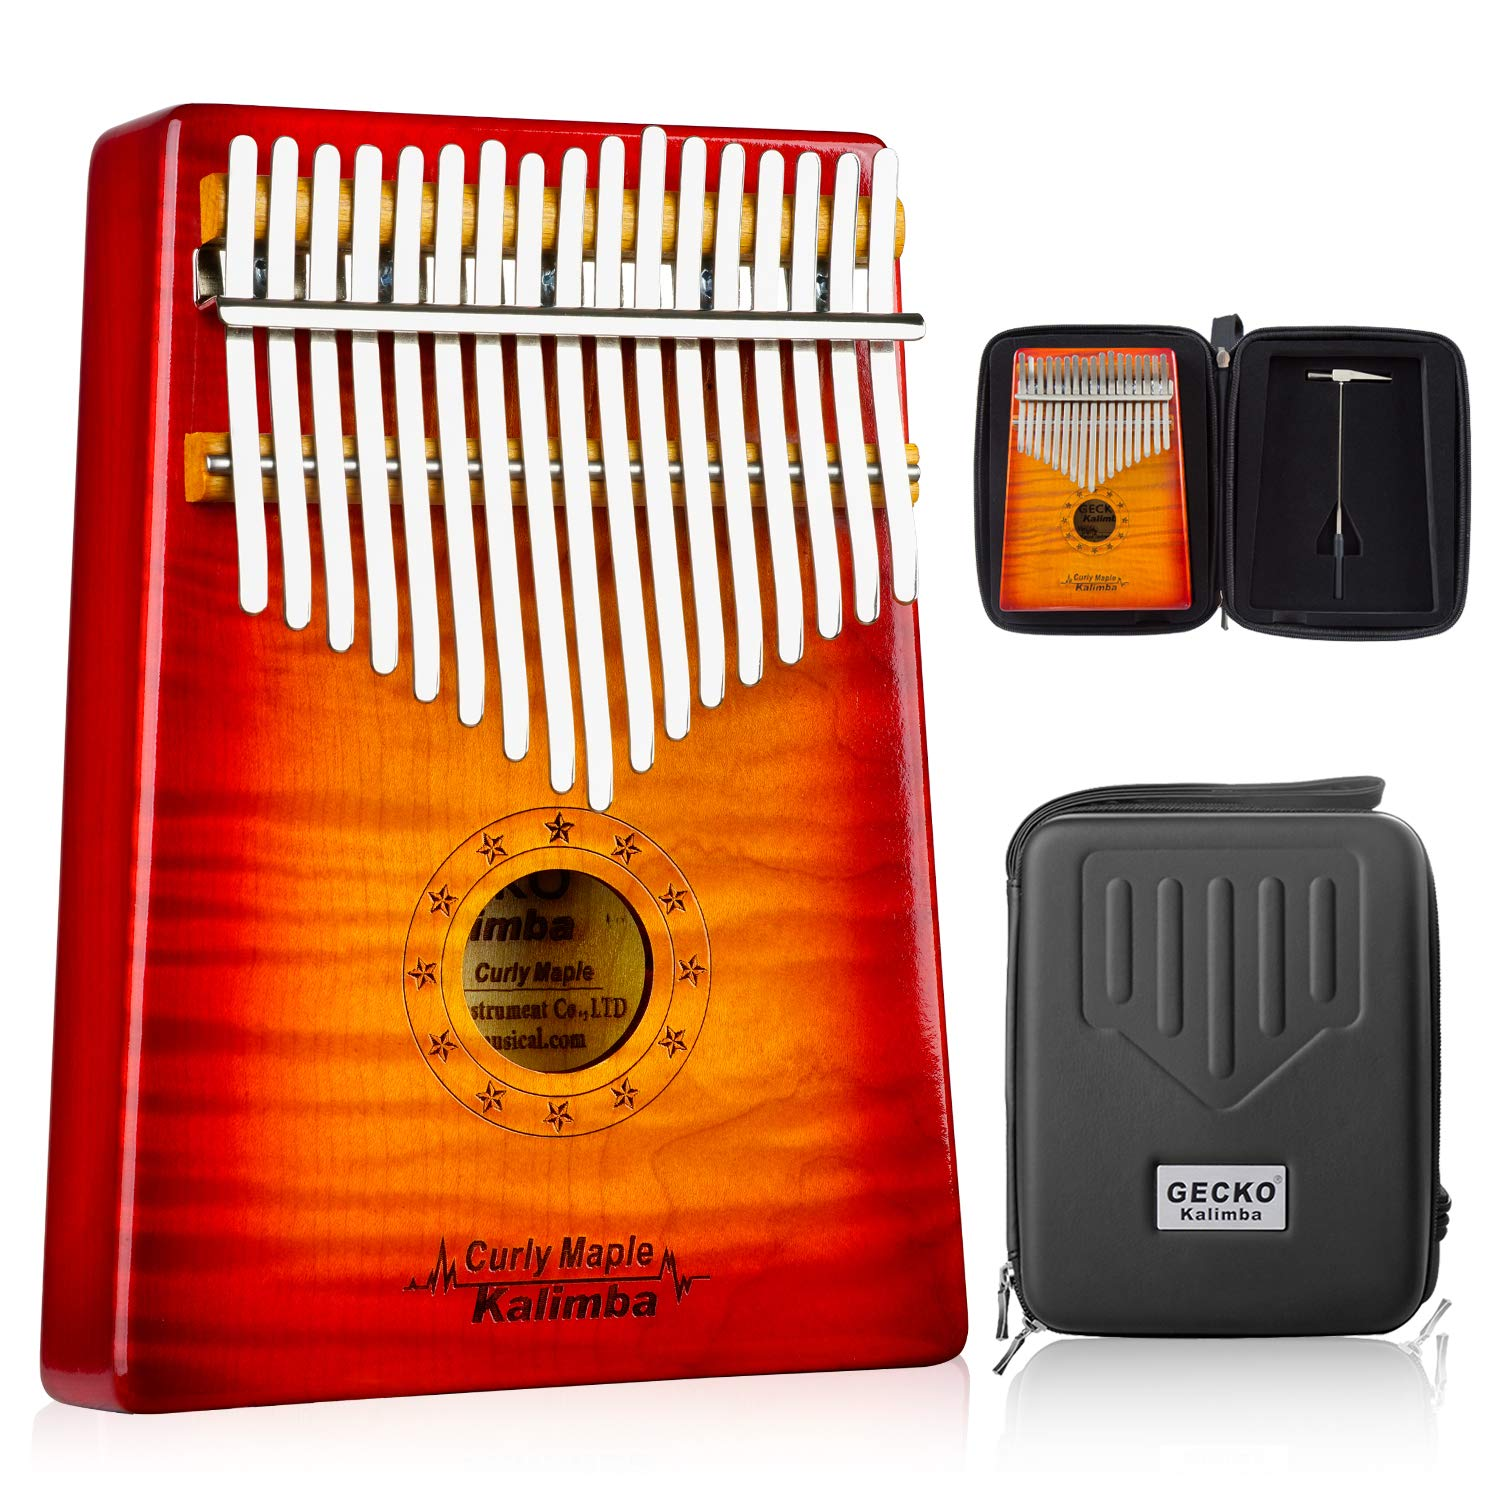 GECKO Kalimba 17 Key Thumb Piano with Hardshell Case Learning Book Tuning Hammer for Kids Adult Beginners C Tone Tuned (Solid Curly Maple) by MYTTLELE